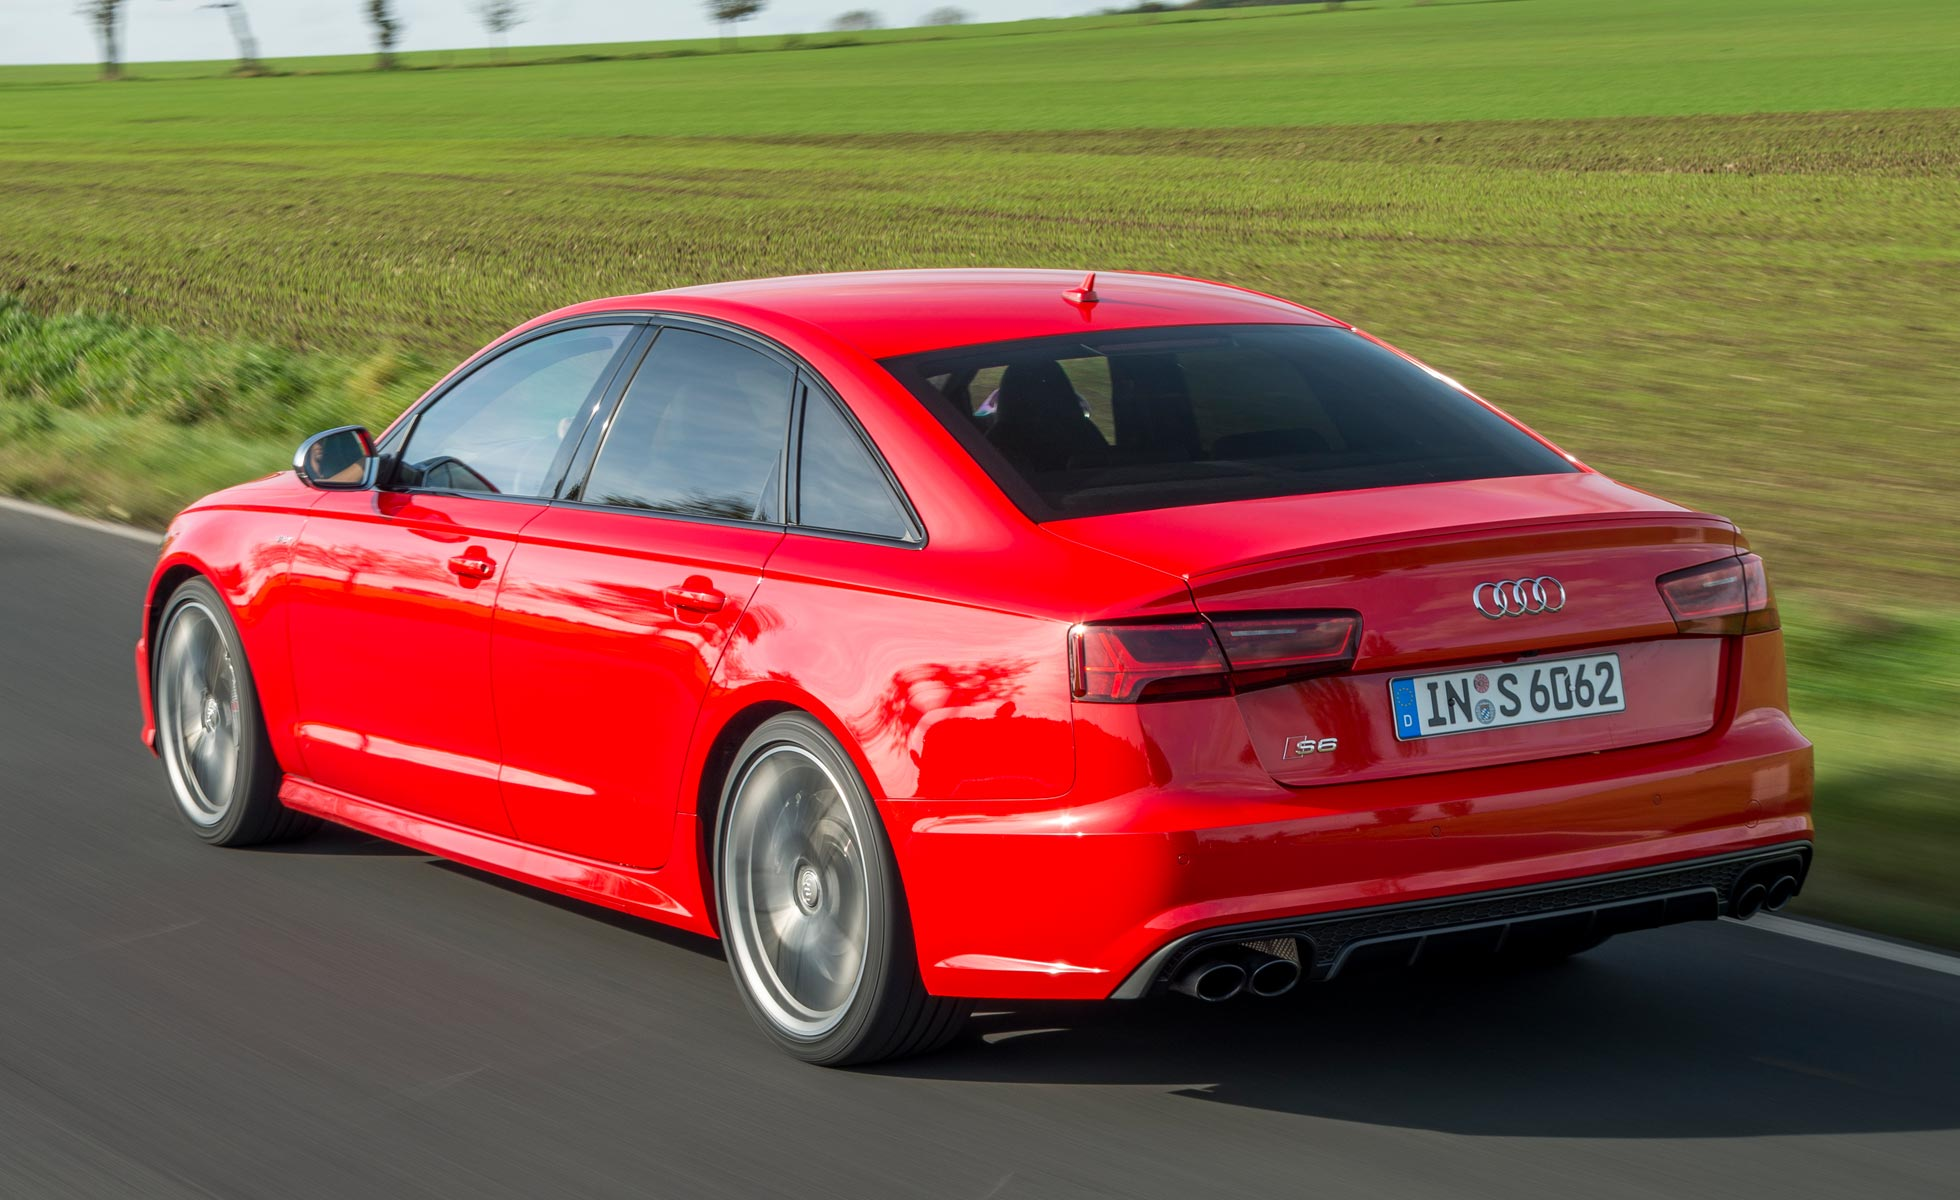 audi s6 2015 first drive review motoring research. Black Bedroom Furniture Sets. Home Design Ideas